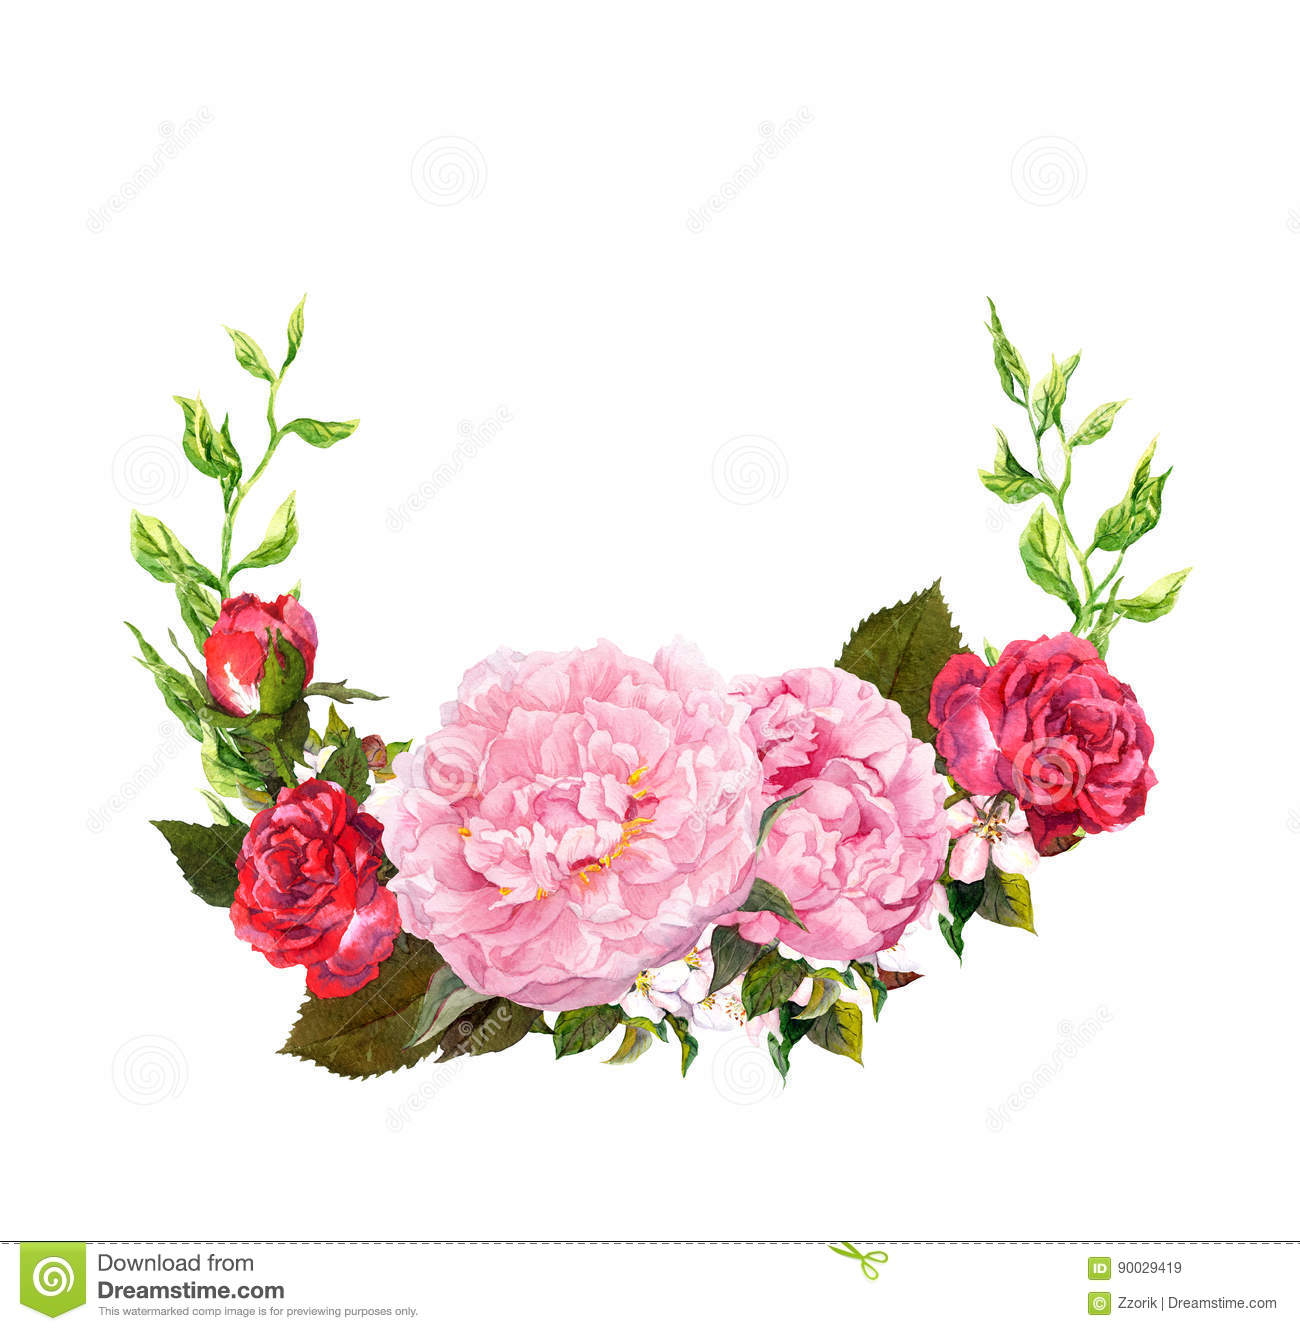 Floral Wreath With Pink Peony Flowers, Red Roses. Save